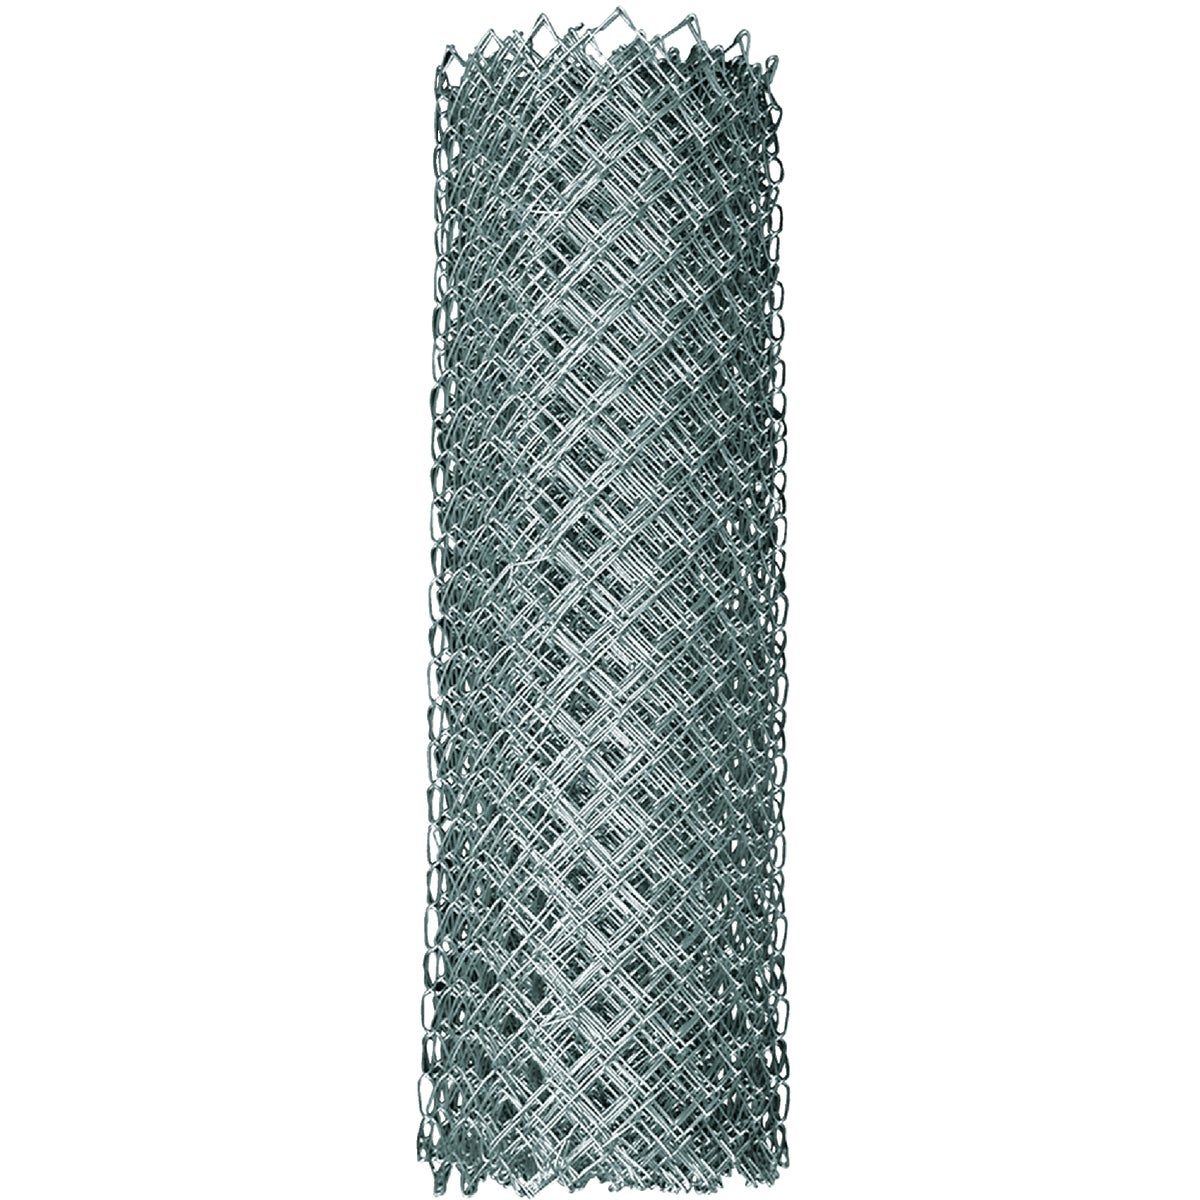 12-1/2GA 4X50'CHAIN LINK - 308754A by Midwest Air Tech